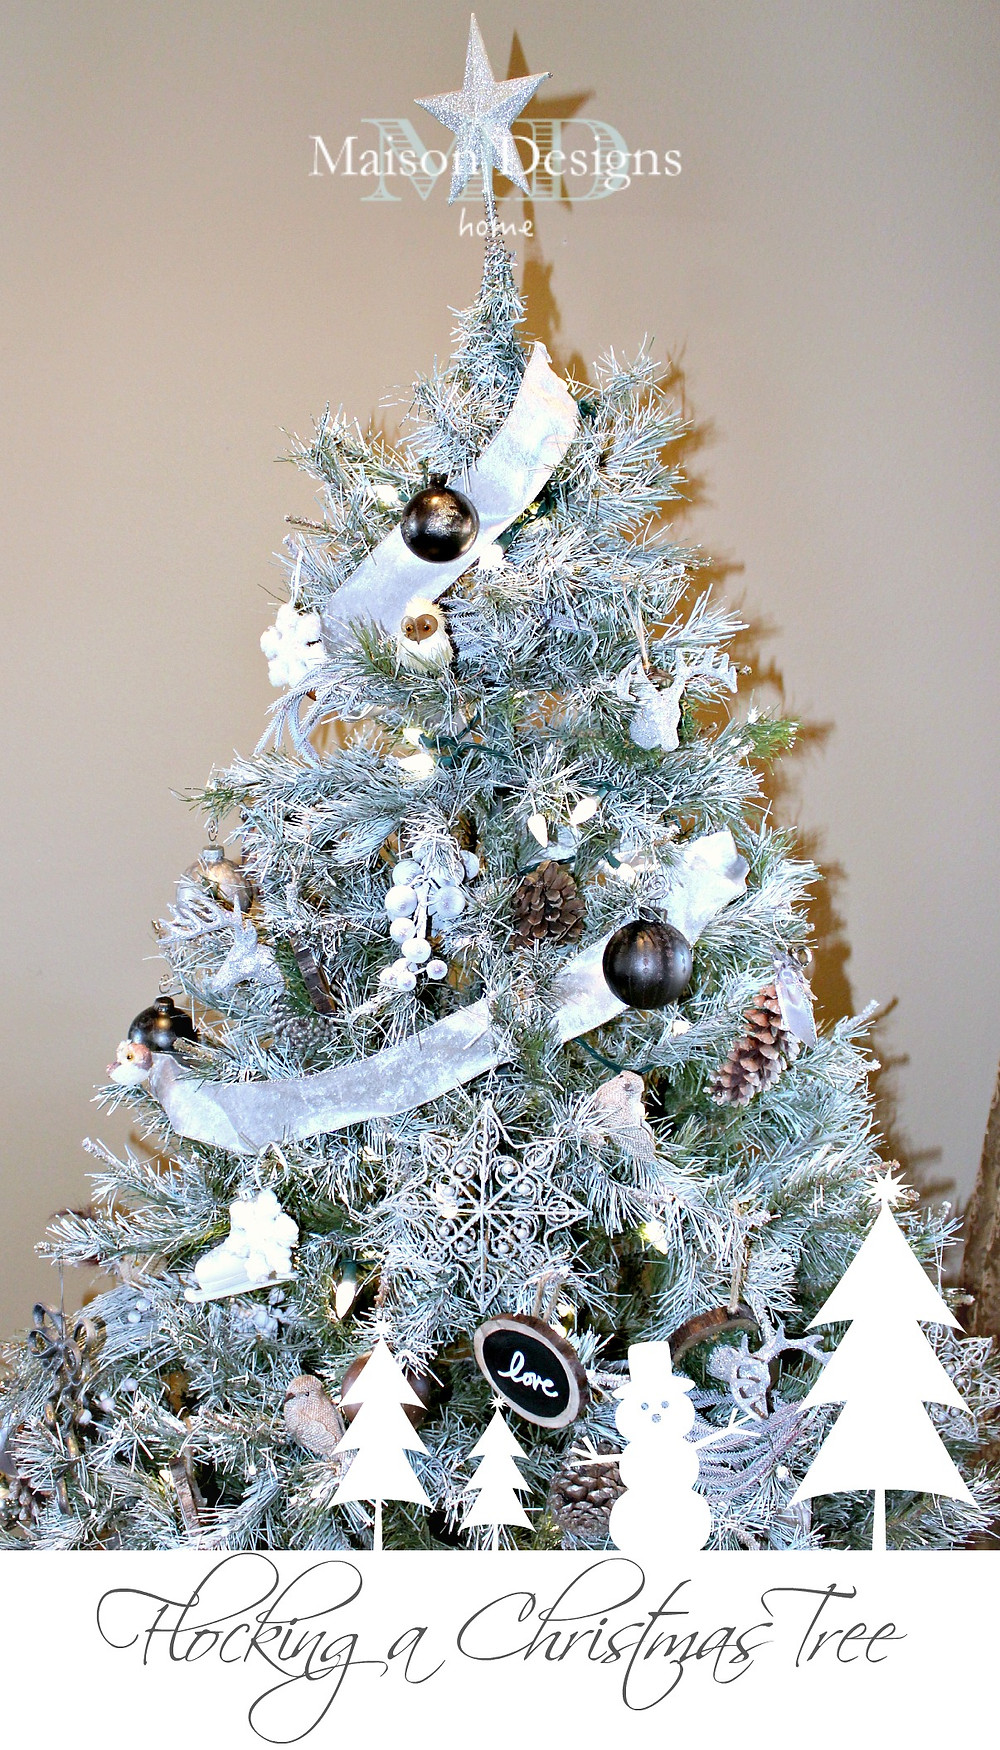 Flocking a Christmas Tree-Maison Designs Home